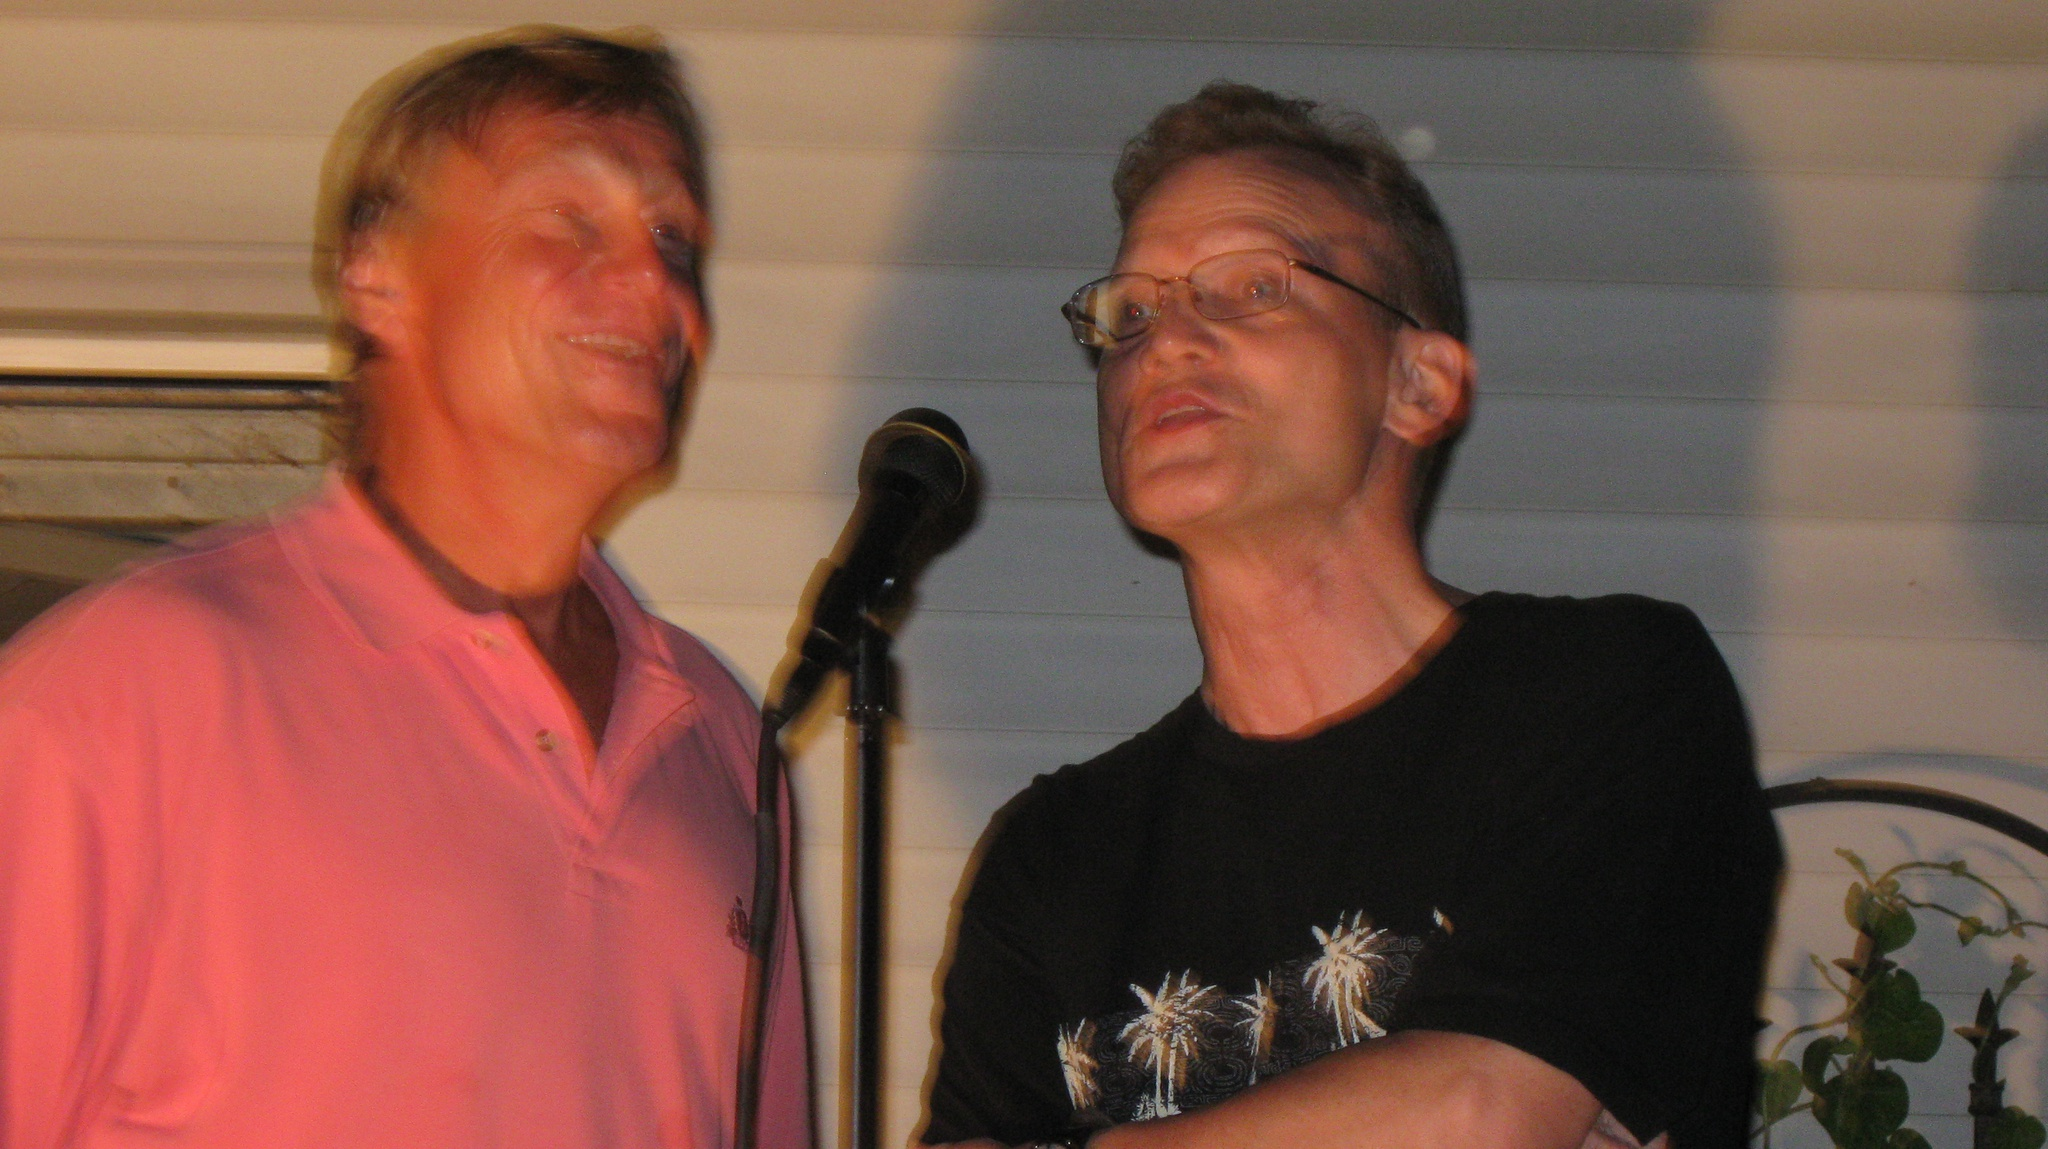 Manny Taylor and David Miller lending their vocal talents. That was a great night of fellowship with friends at Cathy Simpson's old house. Time flies